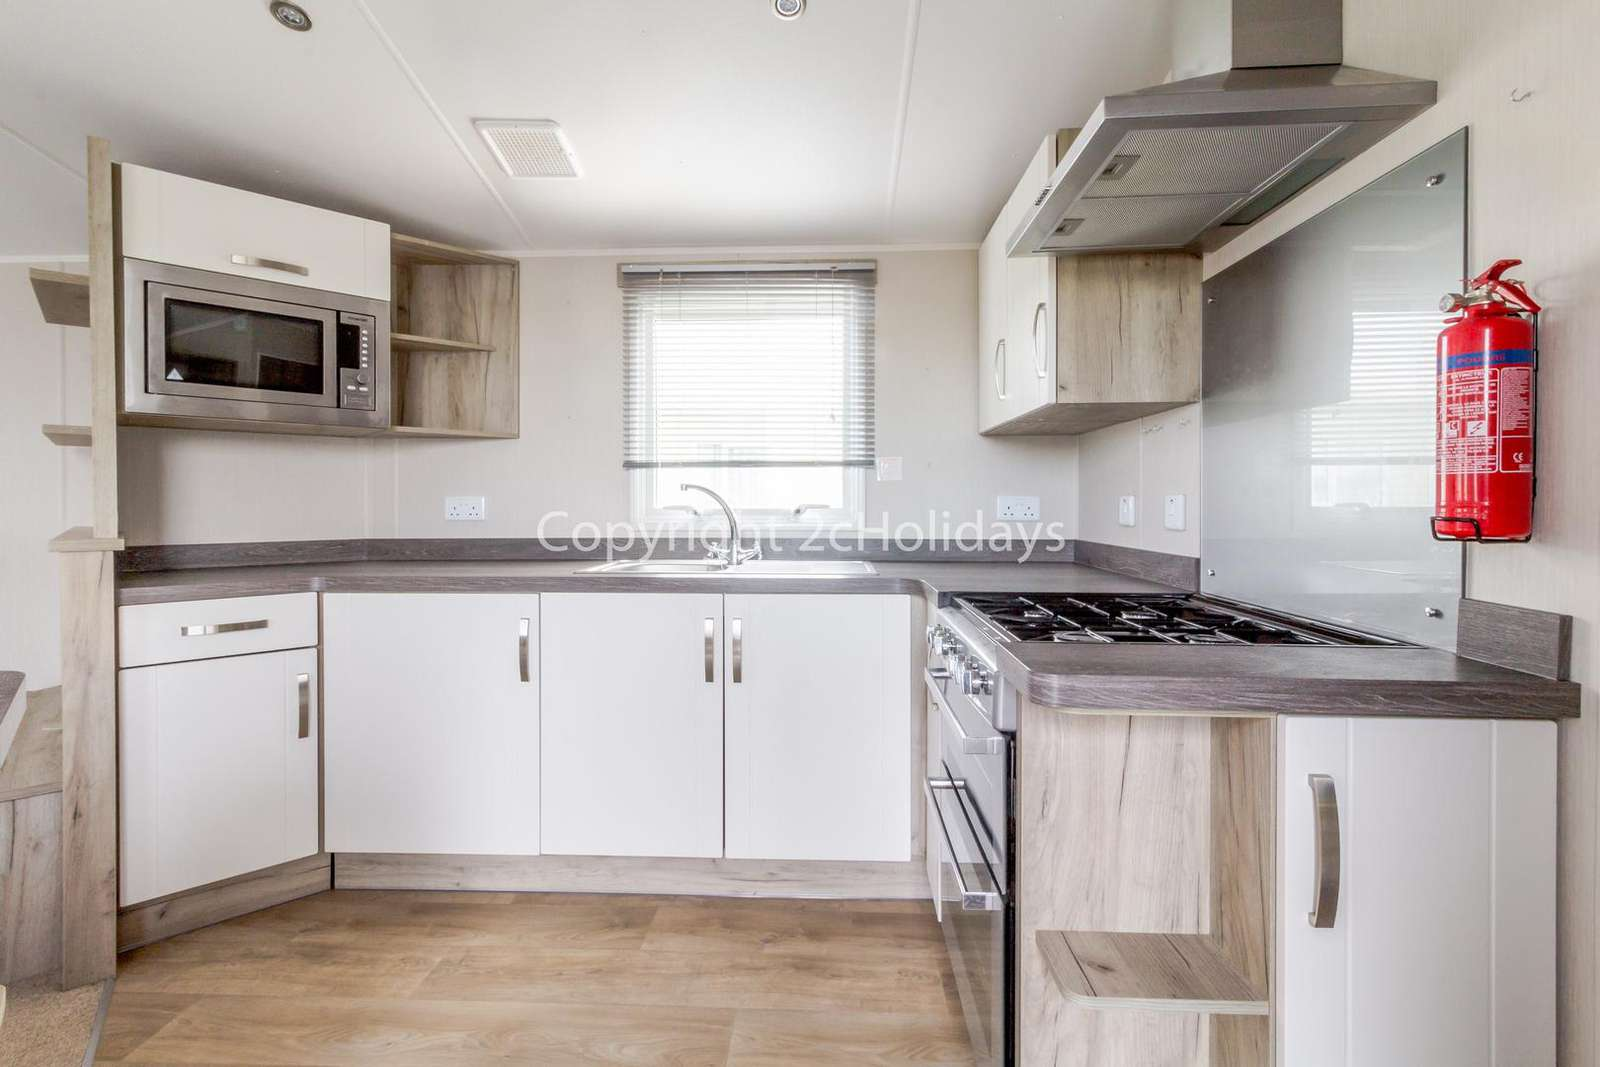 A well equipped modern kitchen, perfect for self-catering breaks!